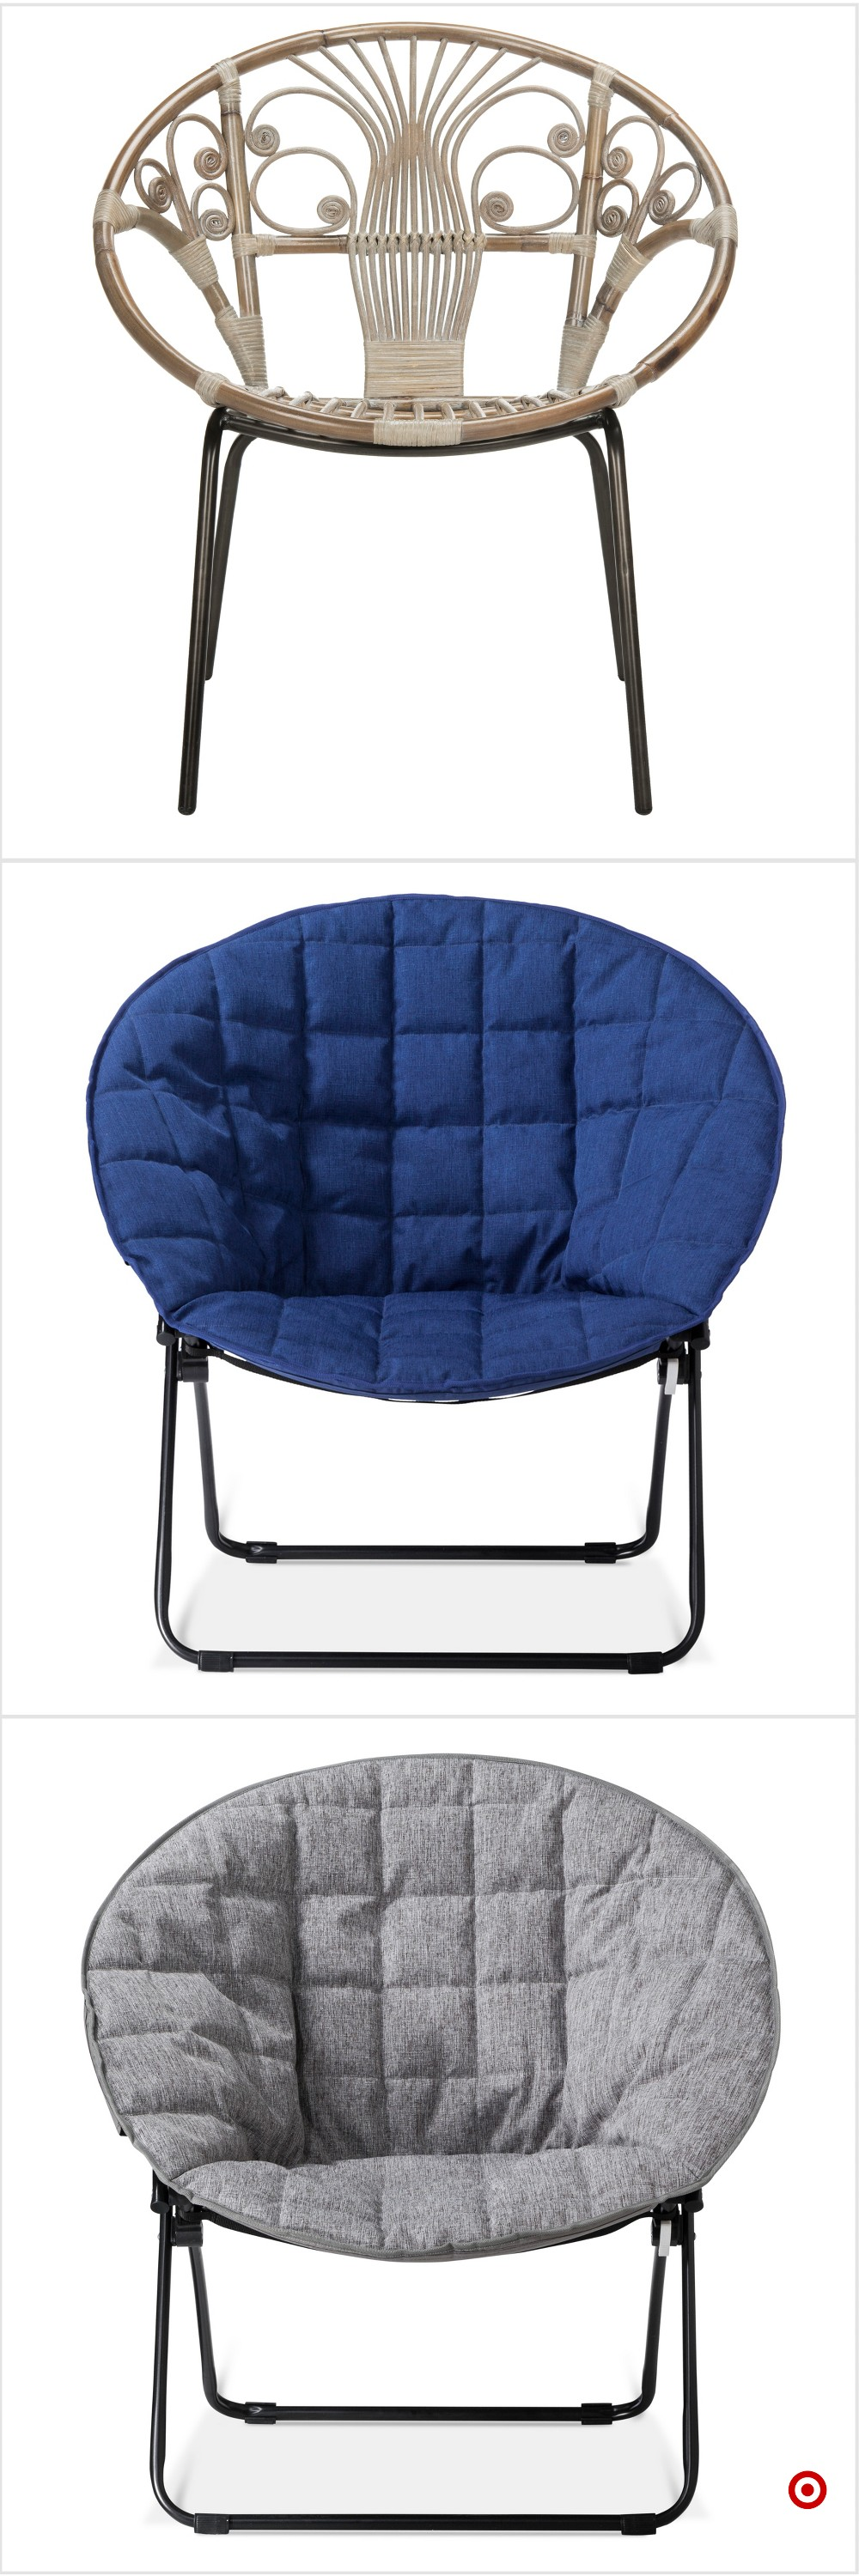 shop target for dish chair you will love at great low prices. free